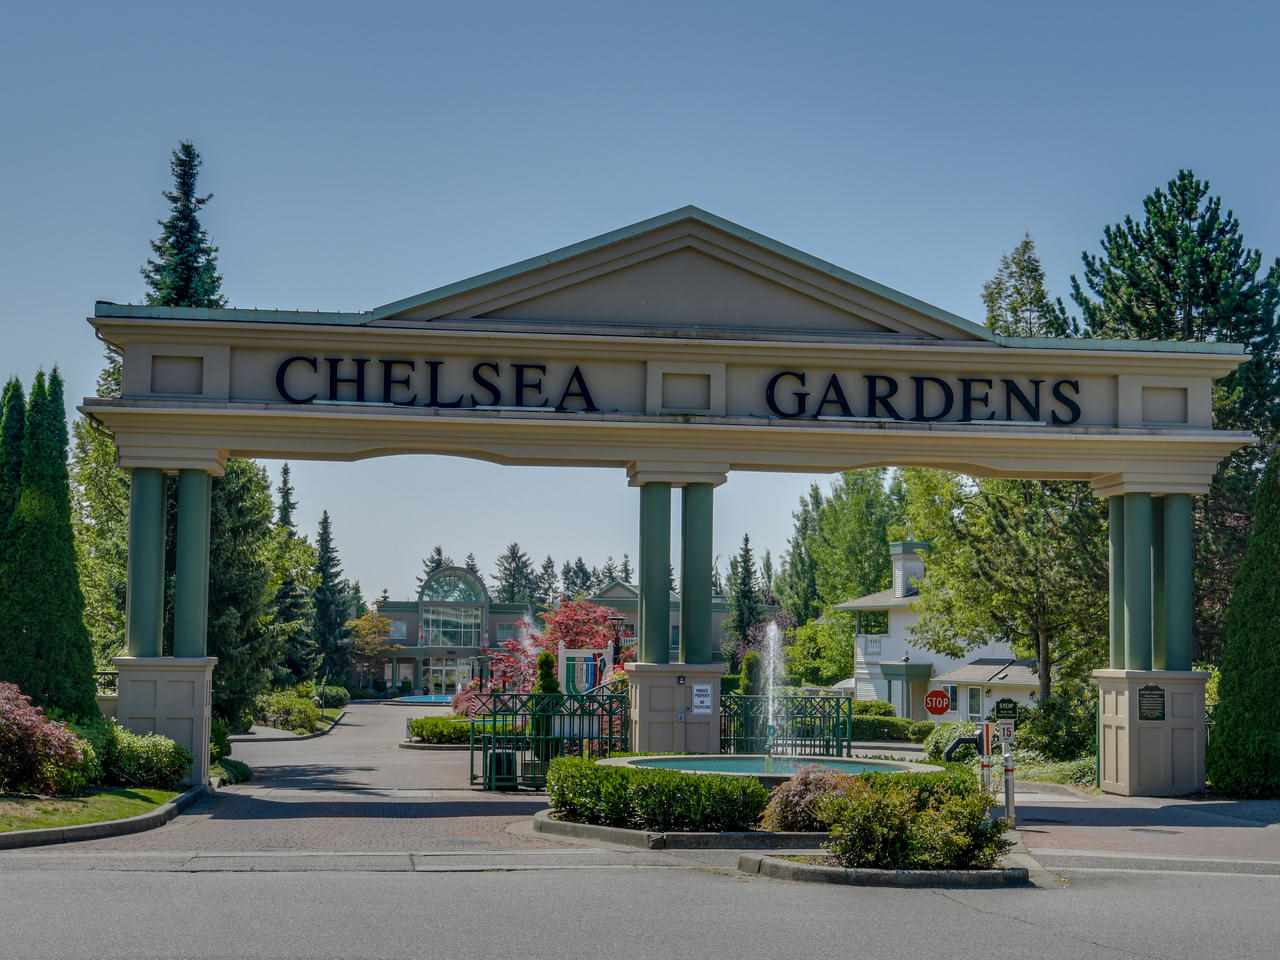 CHELSEA GARDENS! Award winning 23 acre gated Resort Lifestyle, adults 19+ offers a STUNNING Clubhouse, resident manager, pool, hot tub, English Pub, billiards, fully equipped exercise room, workshop, 3guest suites, RV parking & pets OK! Located in a fabulous location, steps to the clubhouse, SHOWS a 10+. Sunny & Bright 1,927 sqft ALL ON ONE FLOOR! Over sized windows, living room w/gas fireplace, family room, large covered balcony, views of trees & green space, 2nd balcony offers morning sun, room for the BBQ. Fresh white kitchen w/separate eating area & pantry. Large master, en suite w/shower & soaker tub. Radiant heat, full size washer/dryer & plenty of storage. JUST INSTALLED, BRAND NEW, beautiful light grey laminate flooring!! Healthy Lifestyle, Fantastic Community, REMARKABLE VALUE!